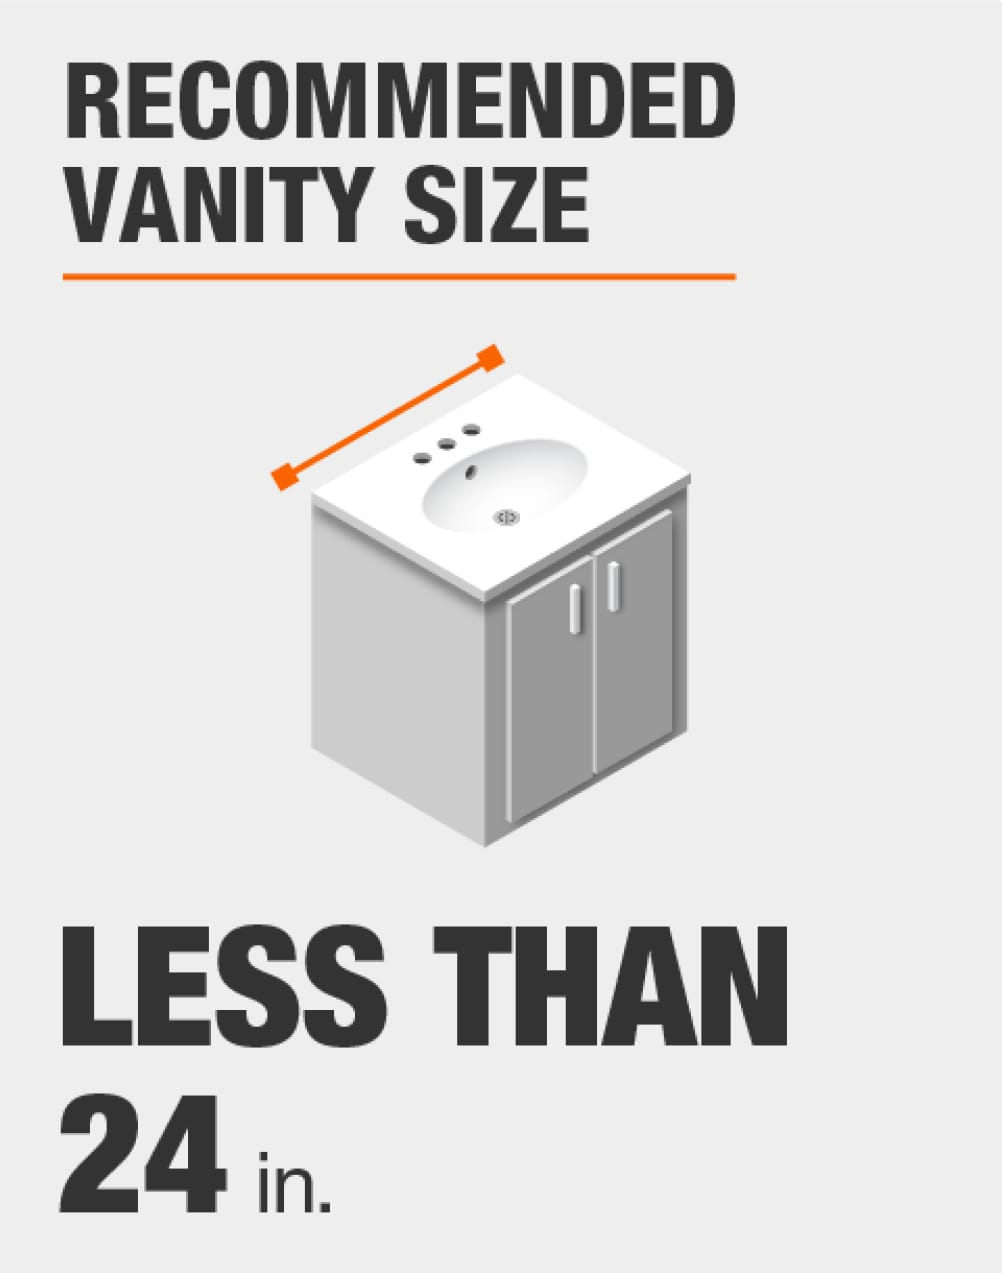 recommended vanity size is less than inches wide